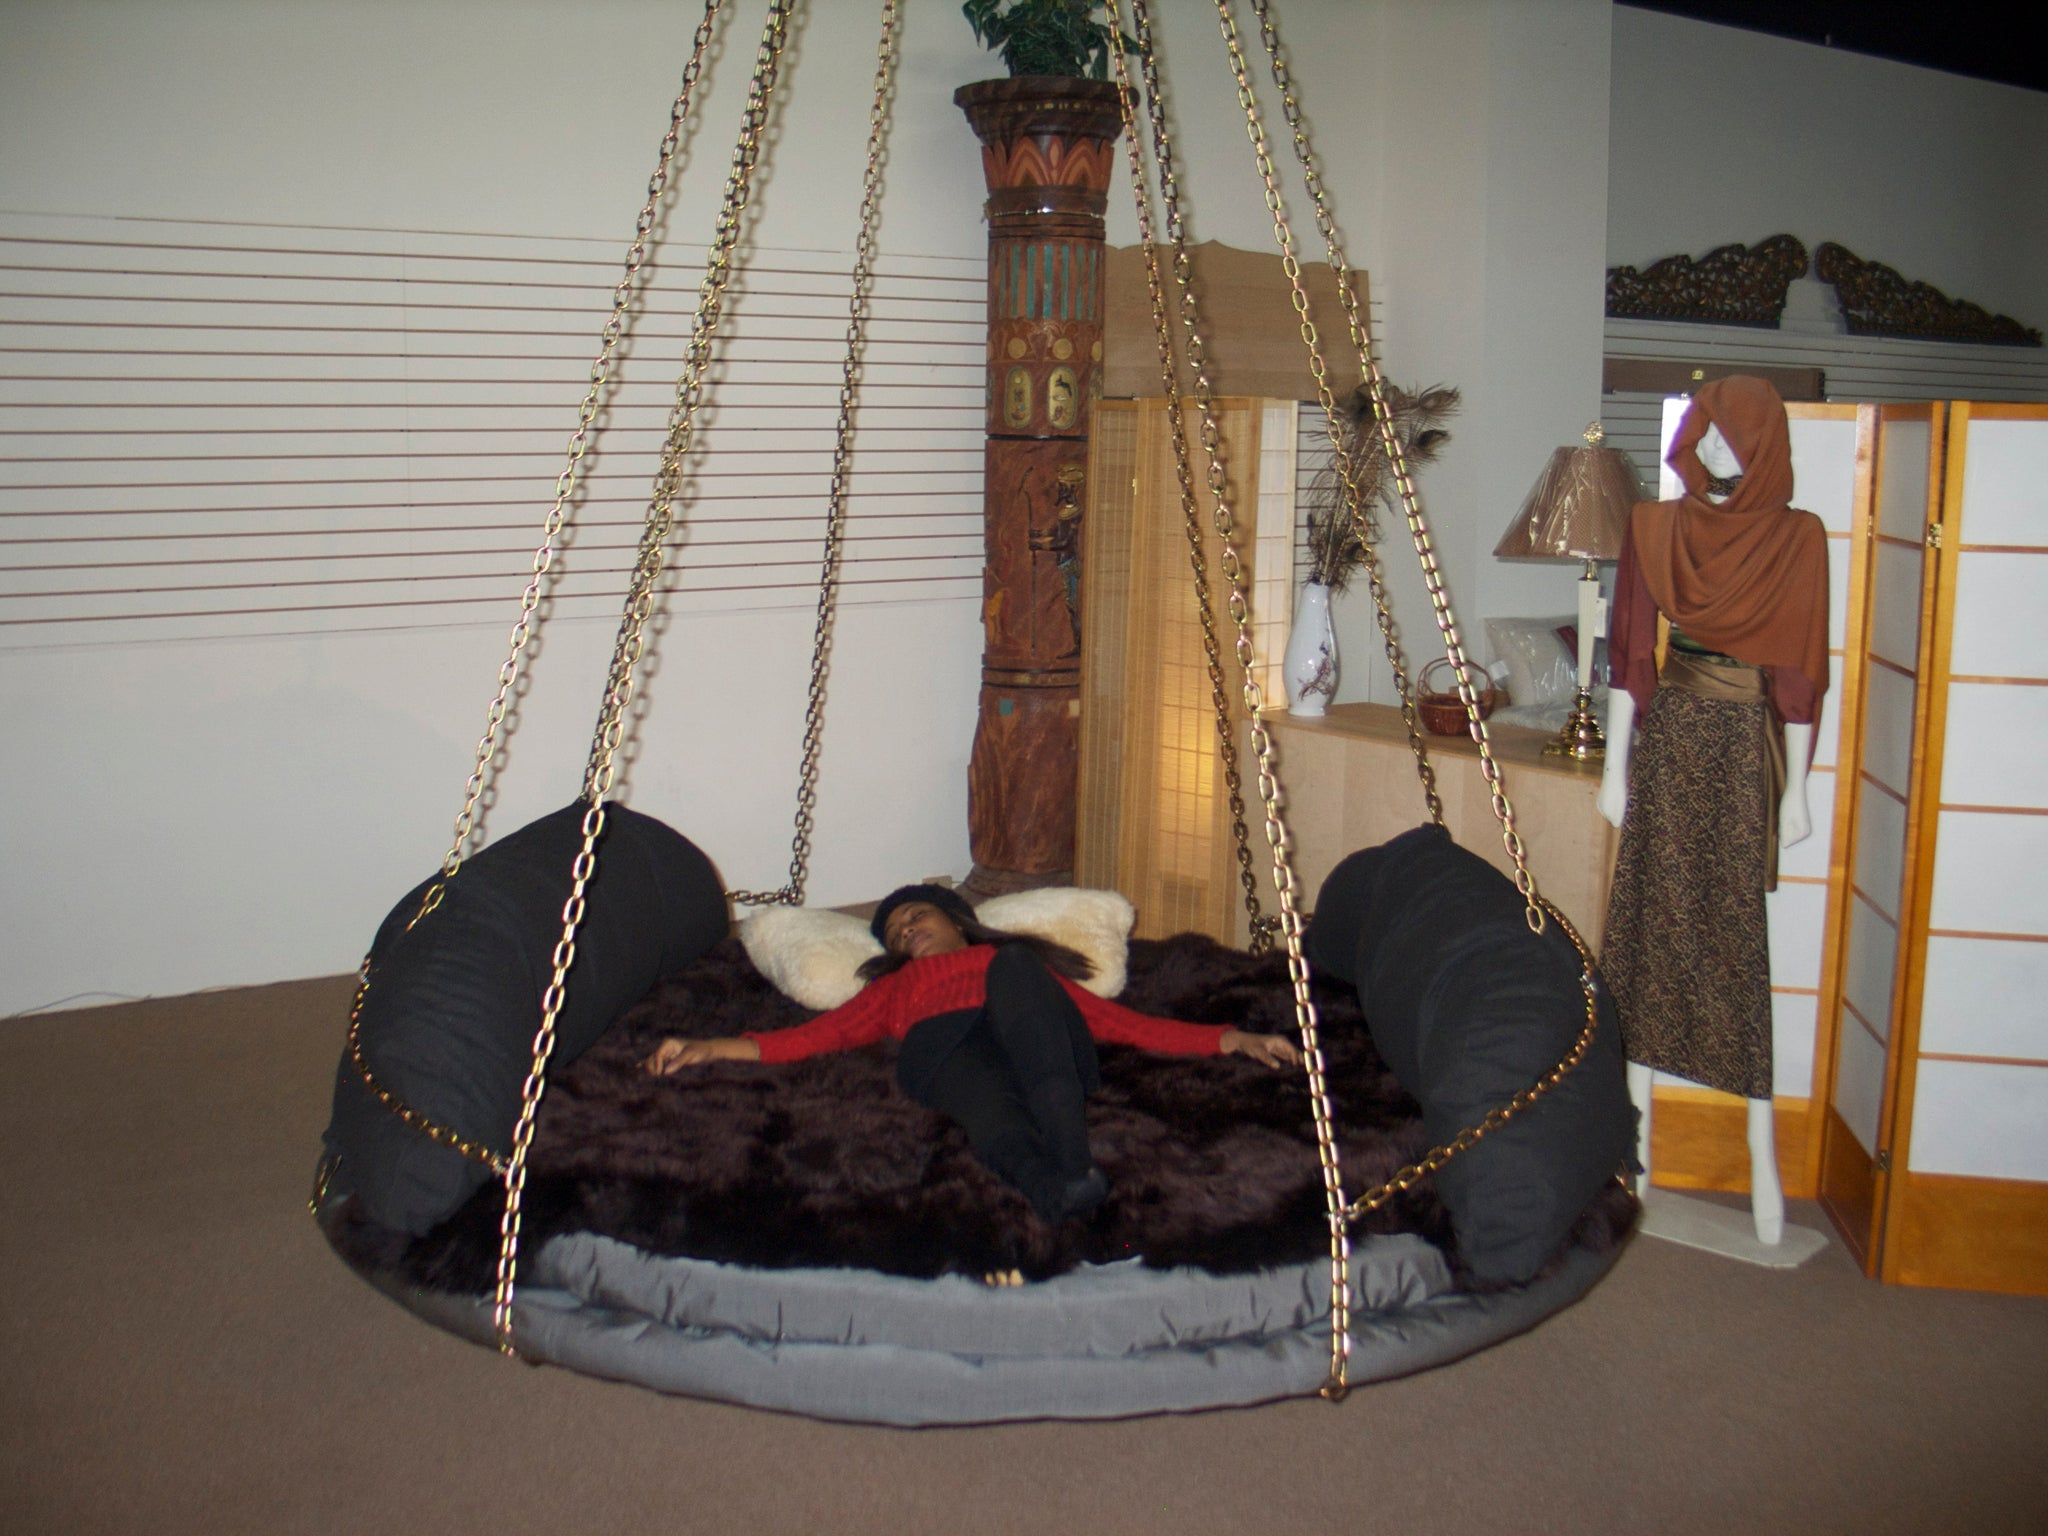 Optional Chain Cascade Support Lines The Floating Bed